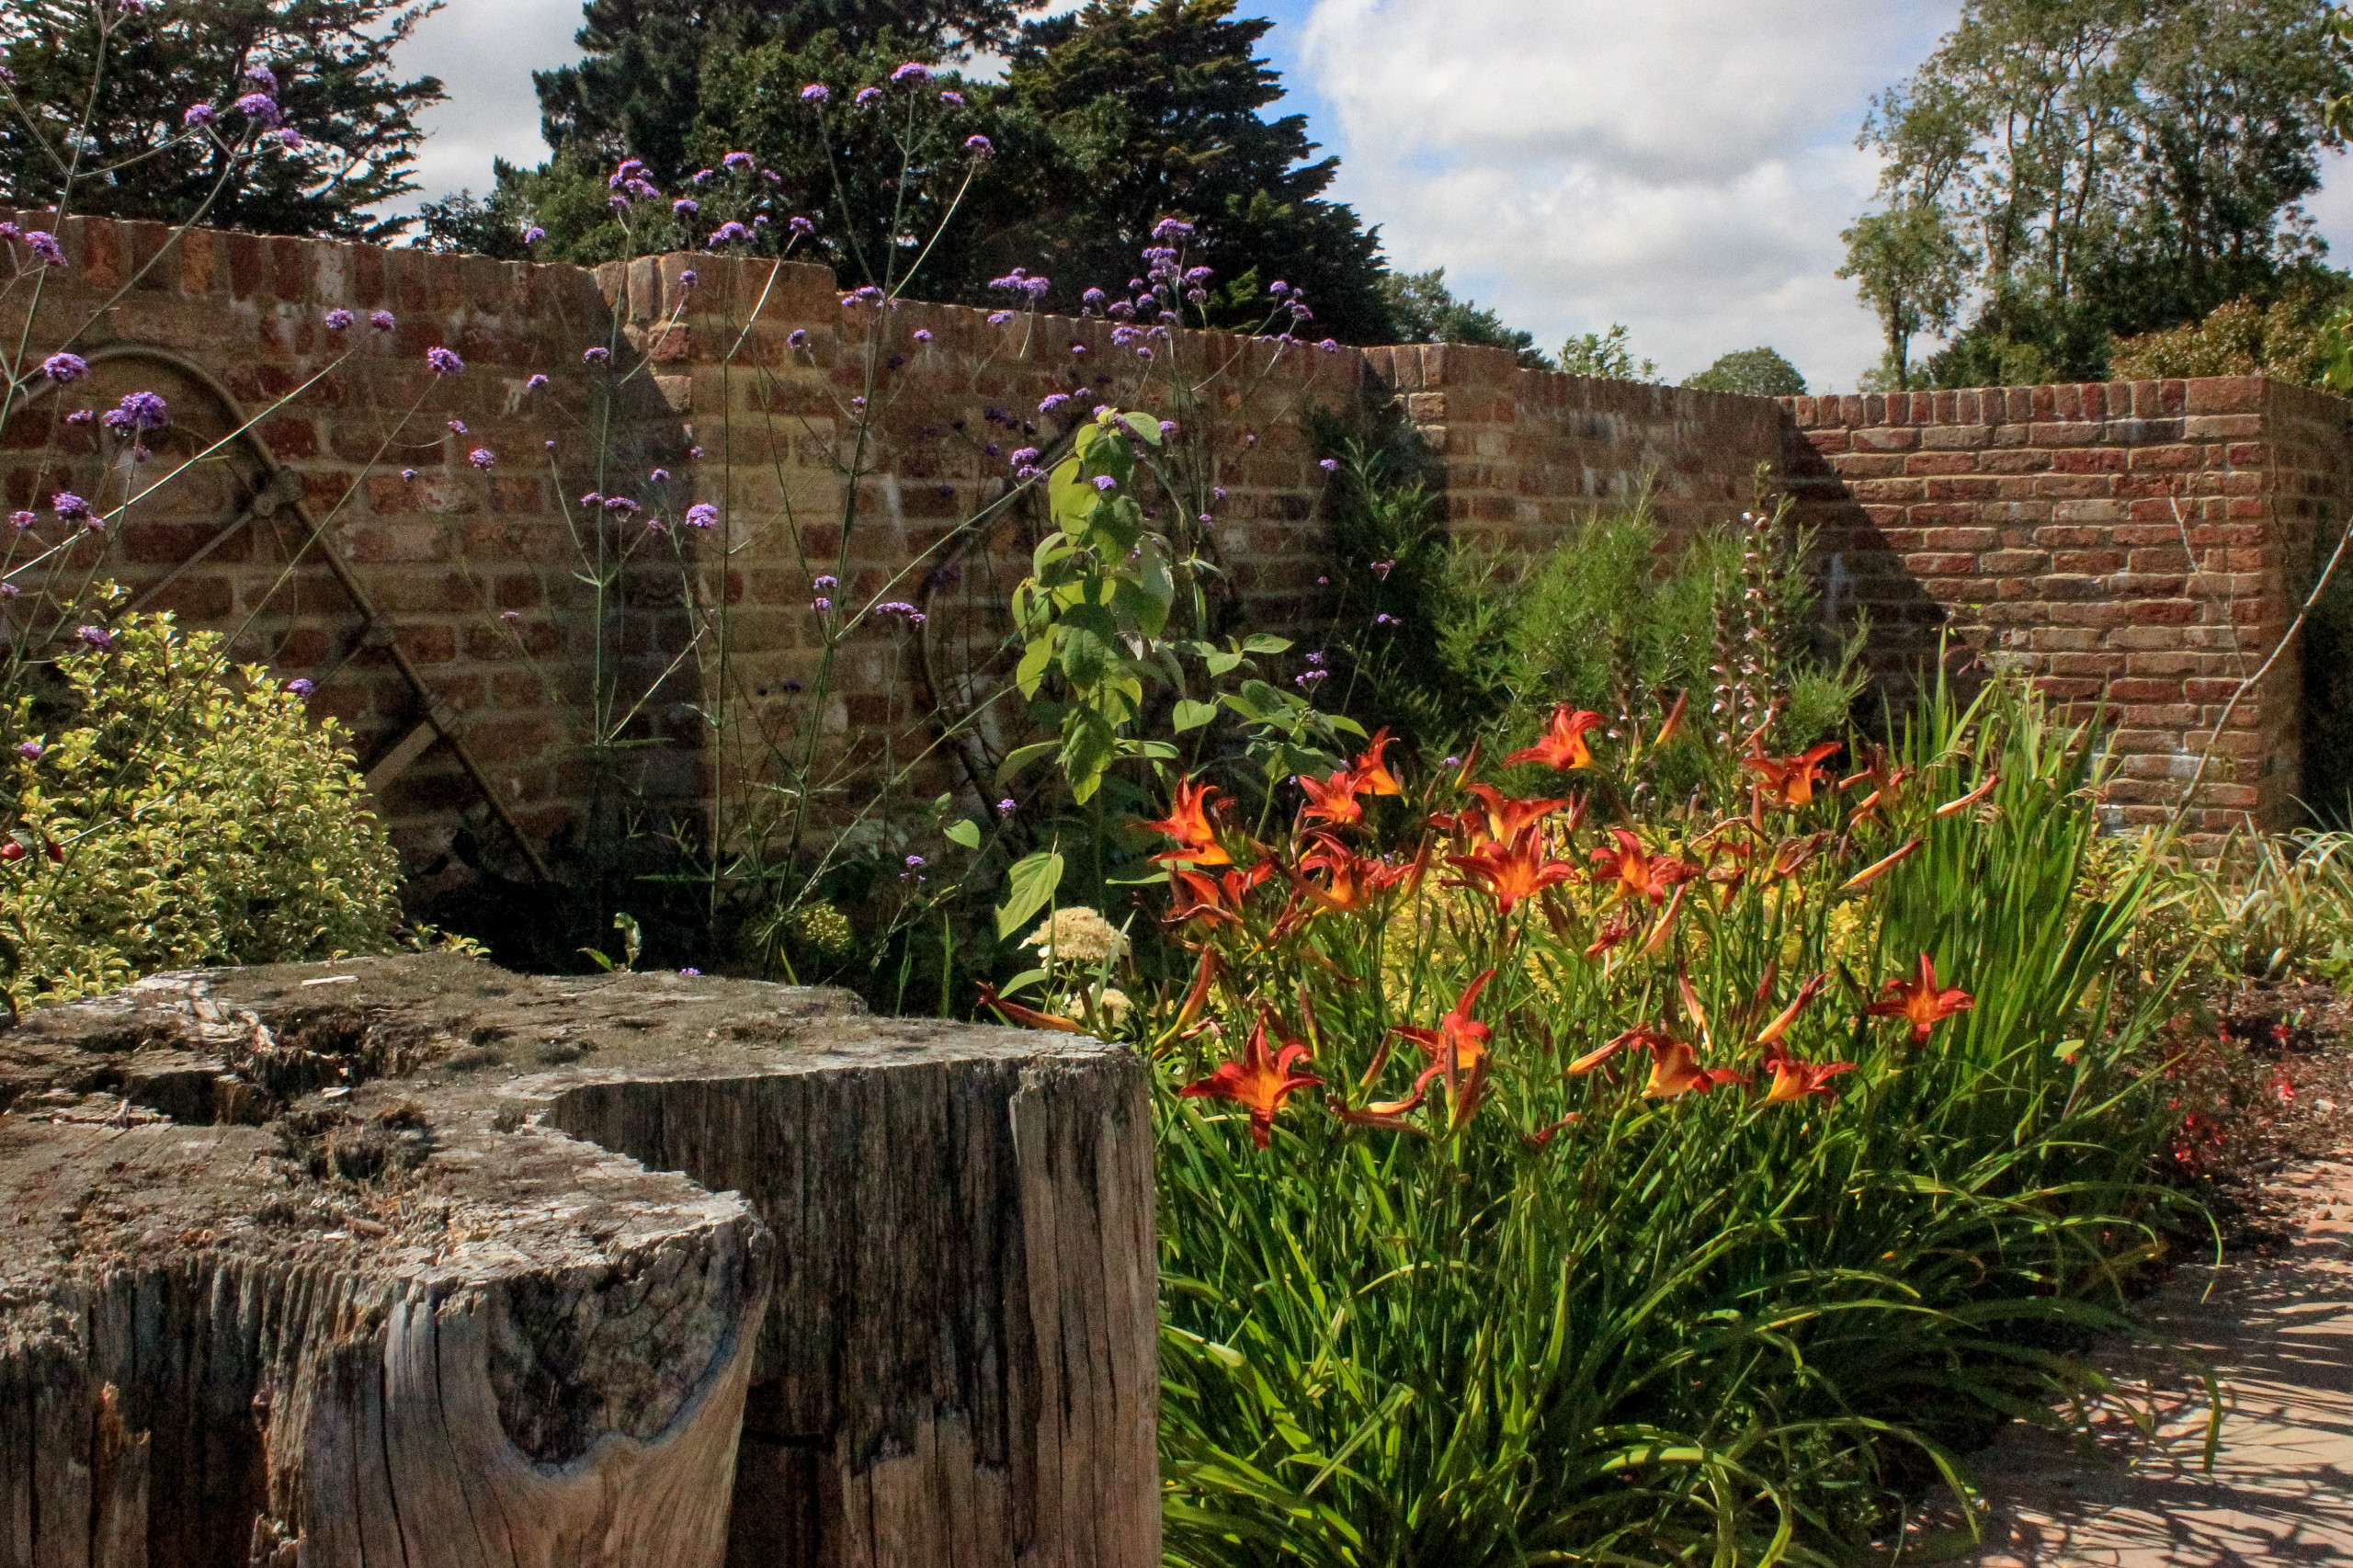 Peace To Eat – A Rural Windswept Garden With Magnificent Views